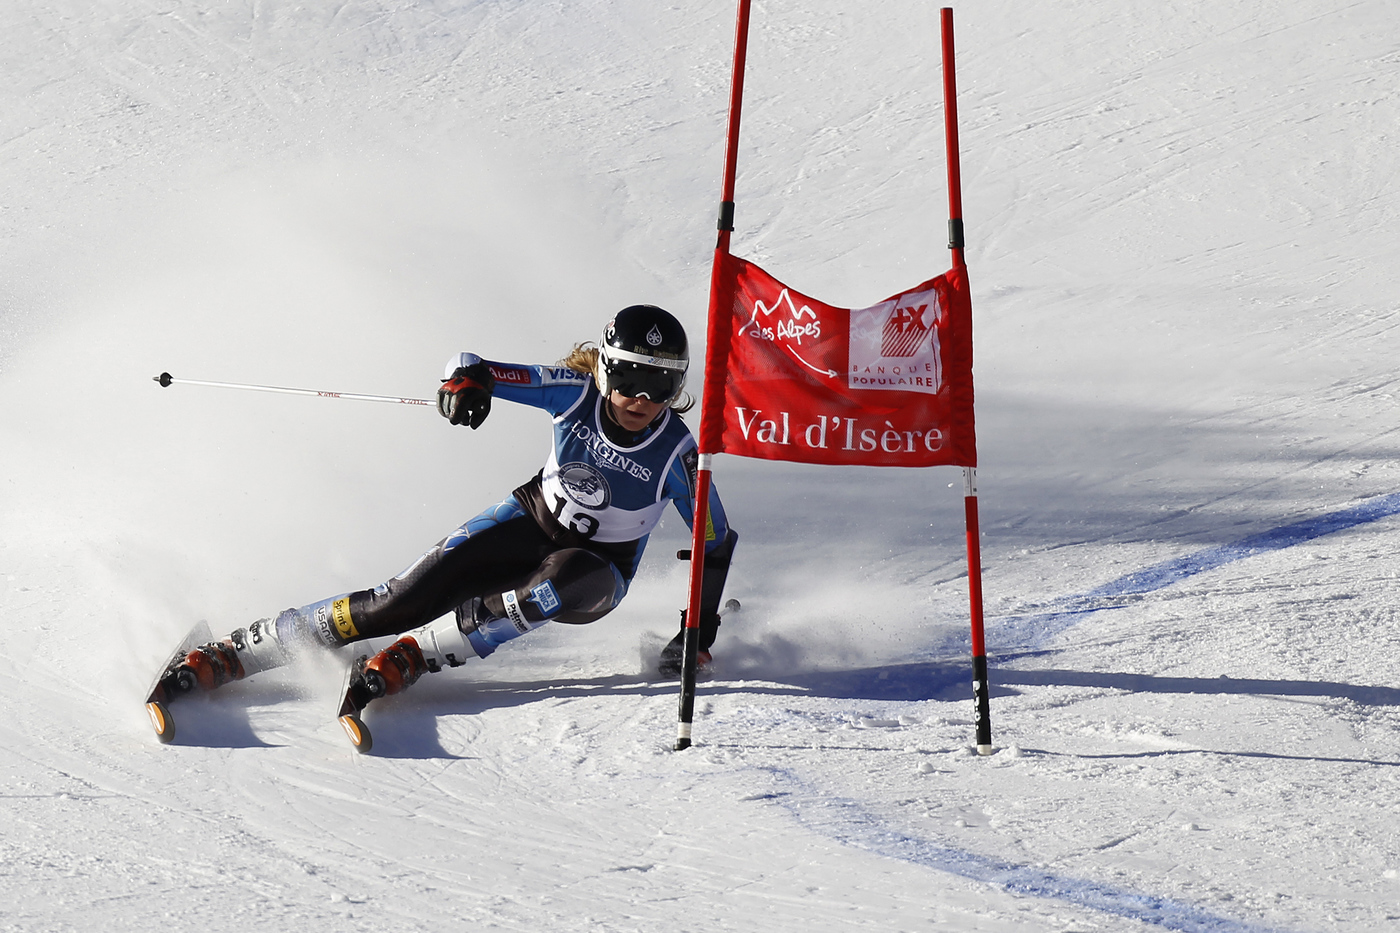 Longines Alpine Skiing Event: The Longines Future Ski Champion 2013 21